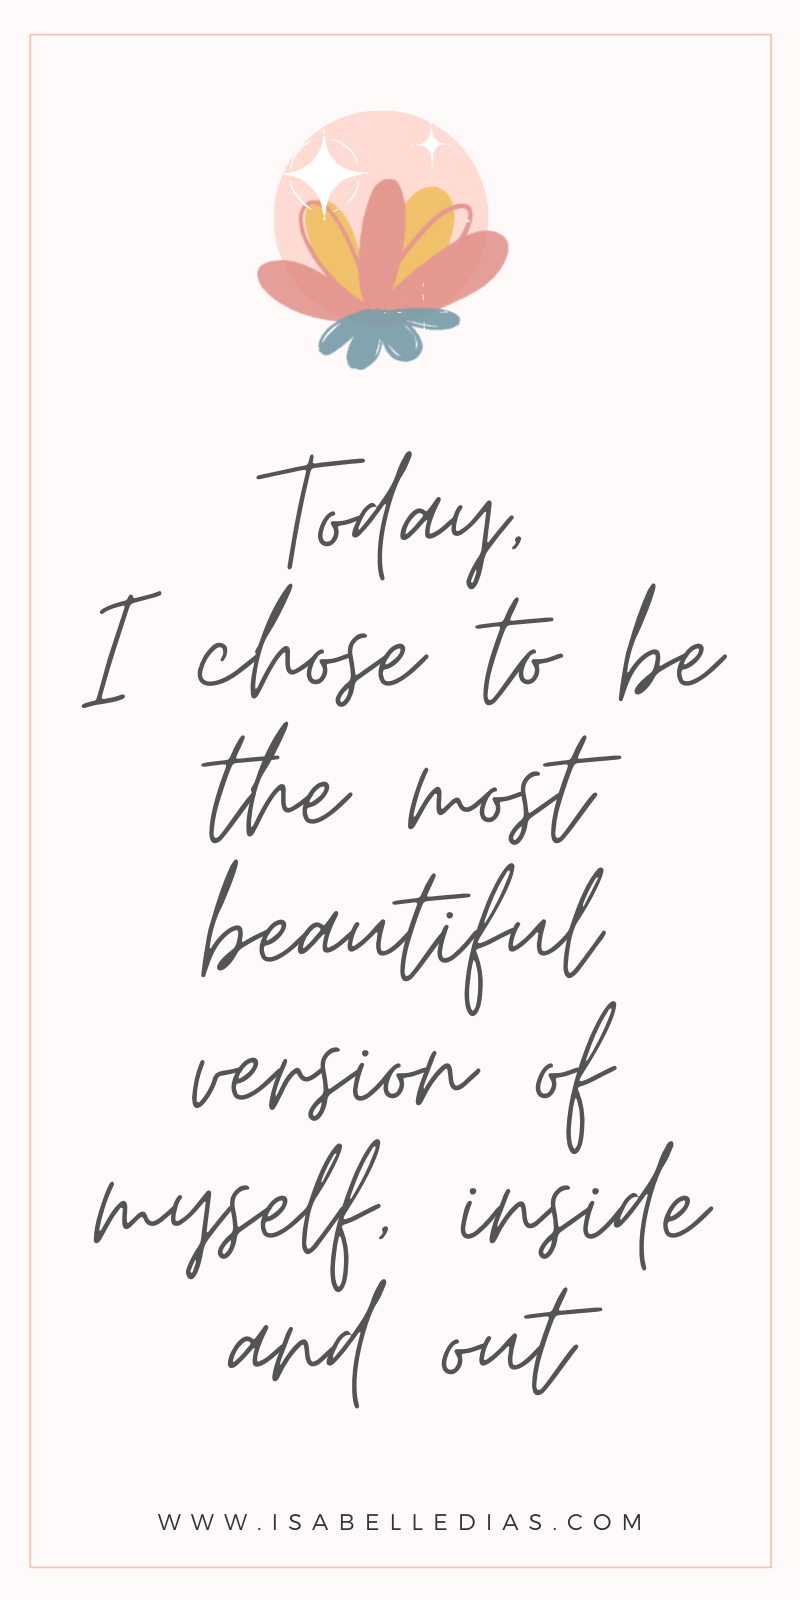 Inspirational Good Morning Affirmation Quotes For Strong Women